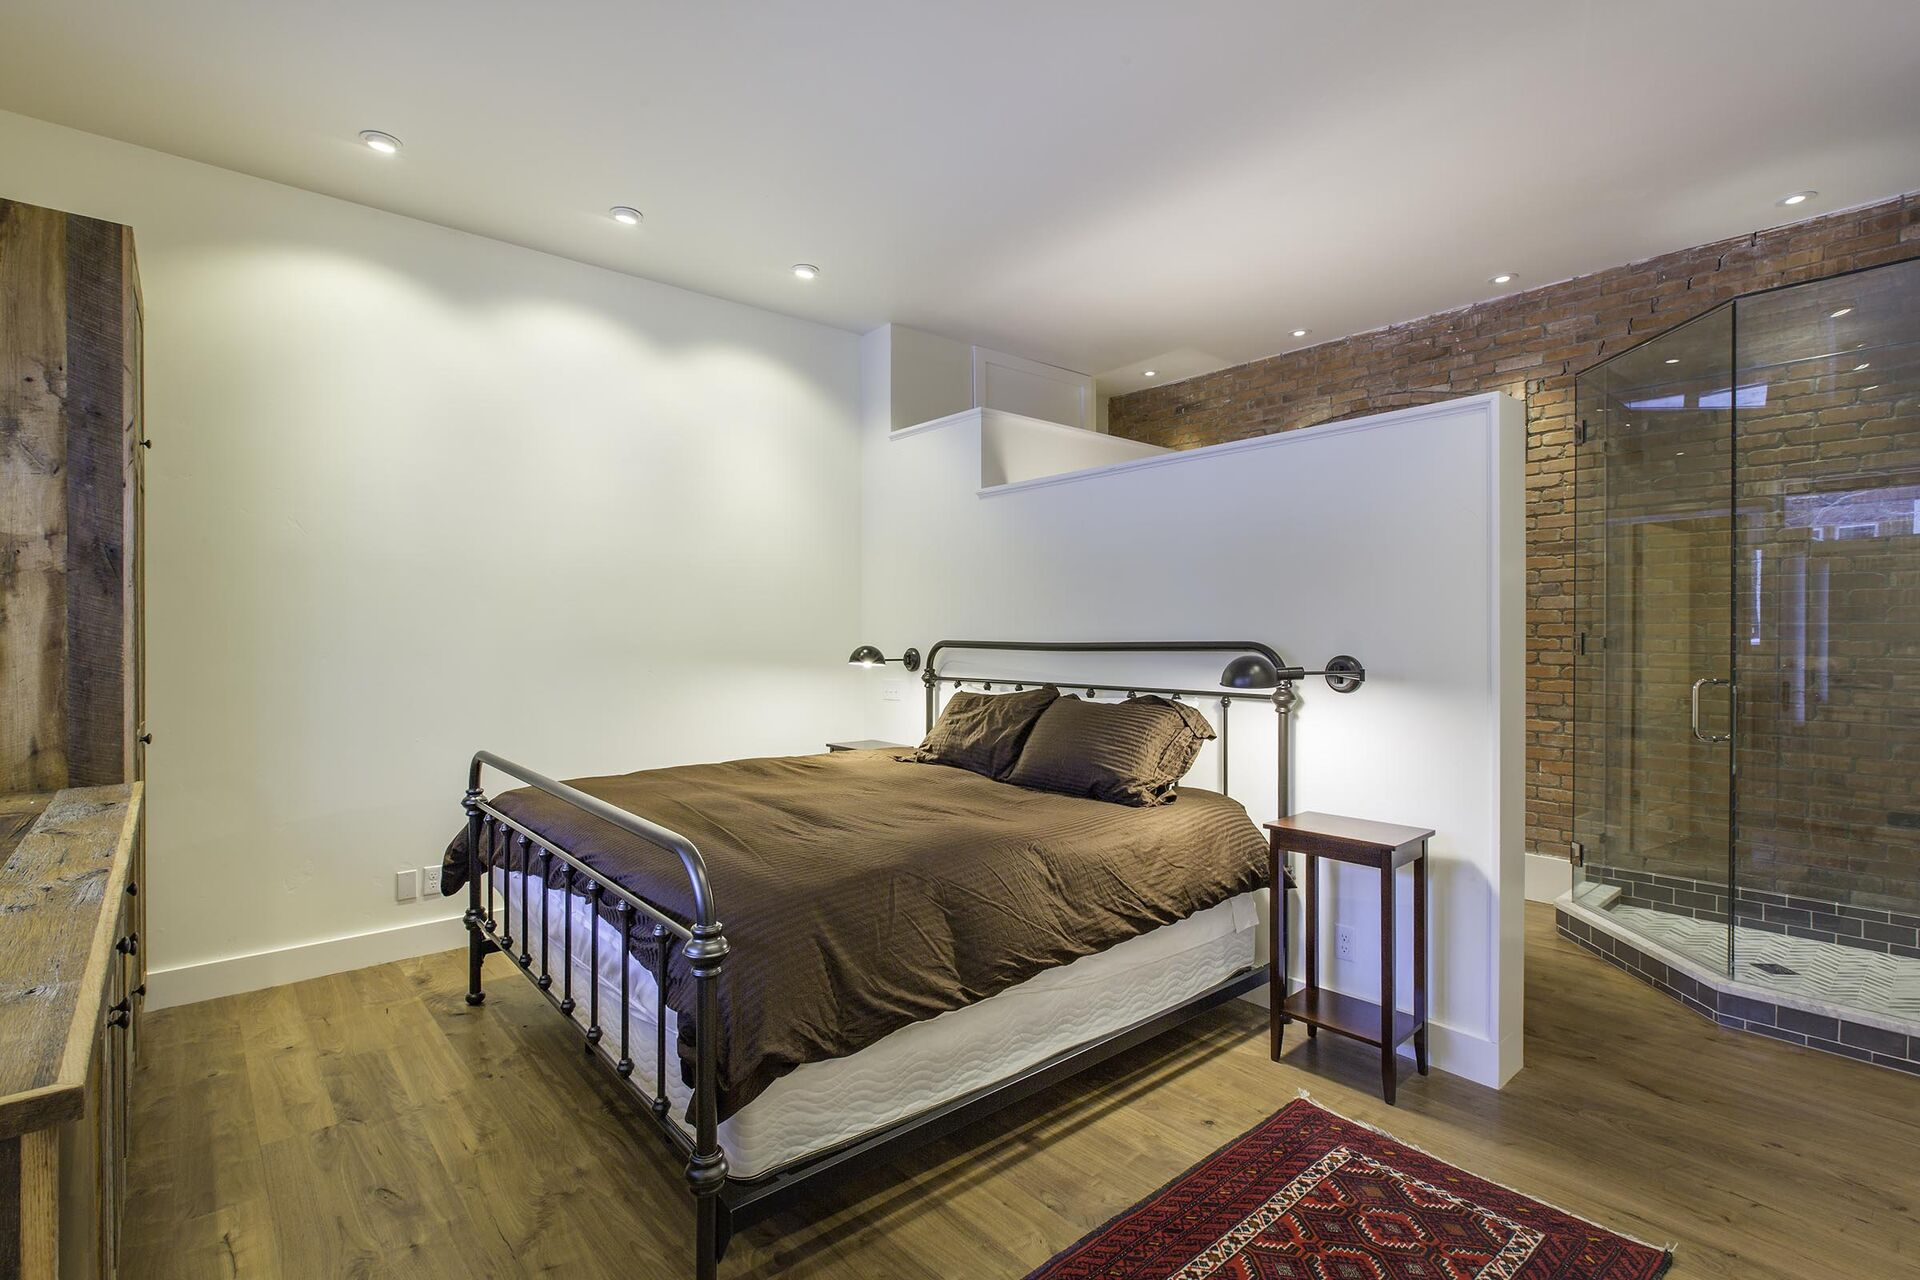 Fourth bedorom with a double bed